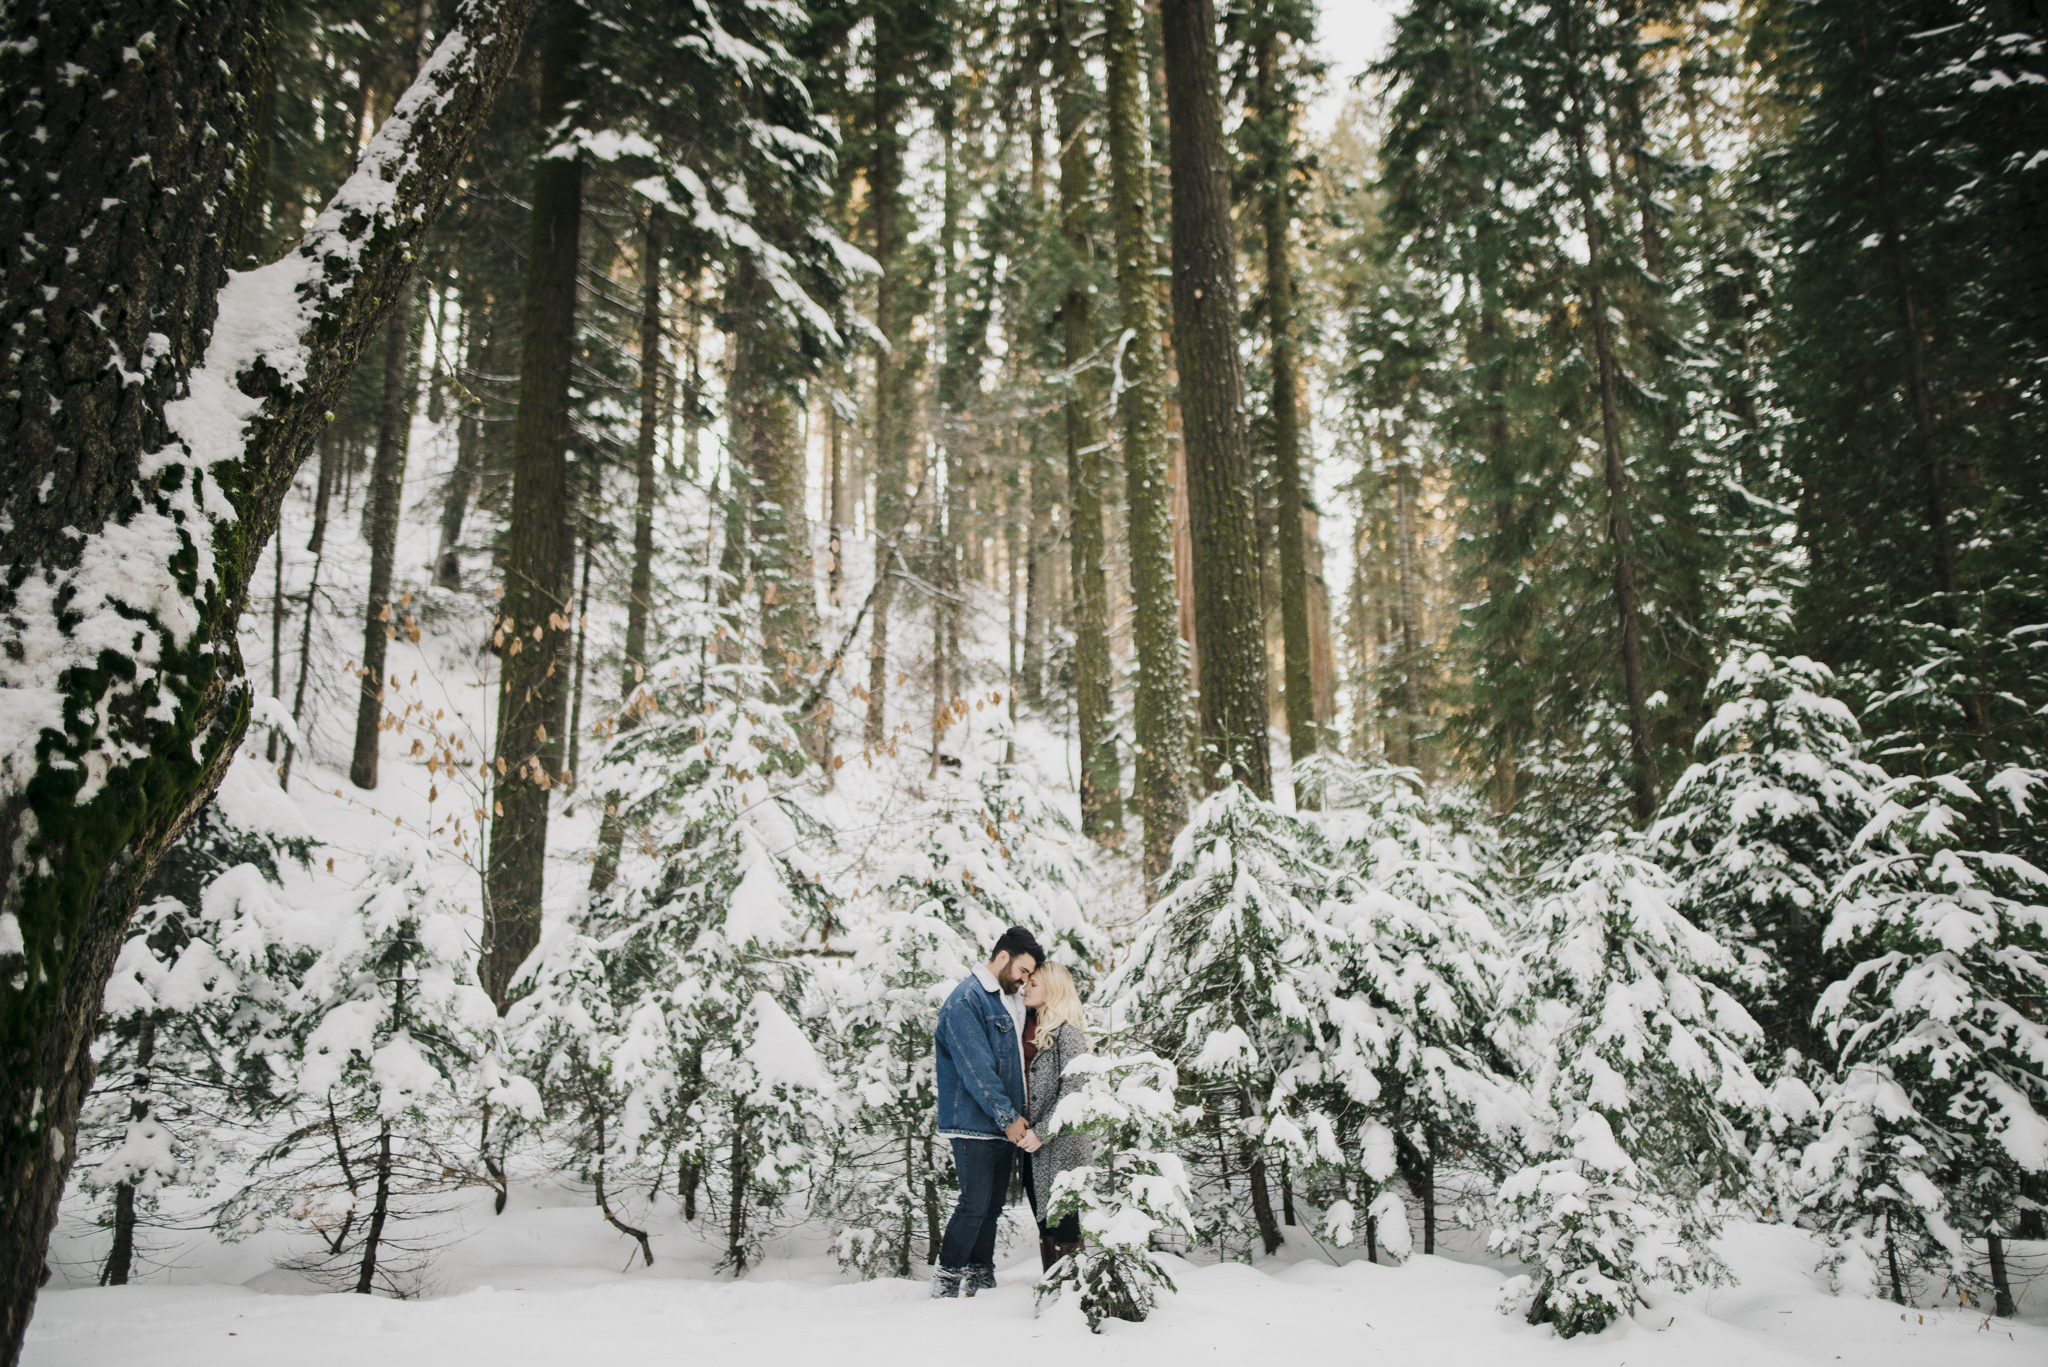 ©Isaiah-&-Taylor-Photography---George-&-Alyssa-Engagement---Sequoia-National-Park,-California-67.jpg